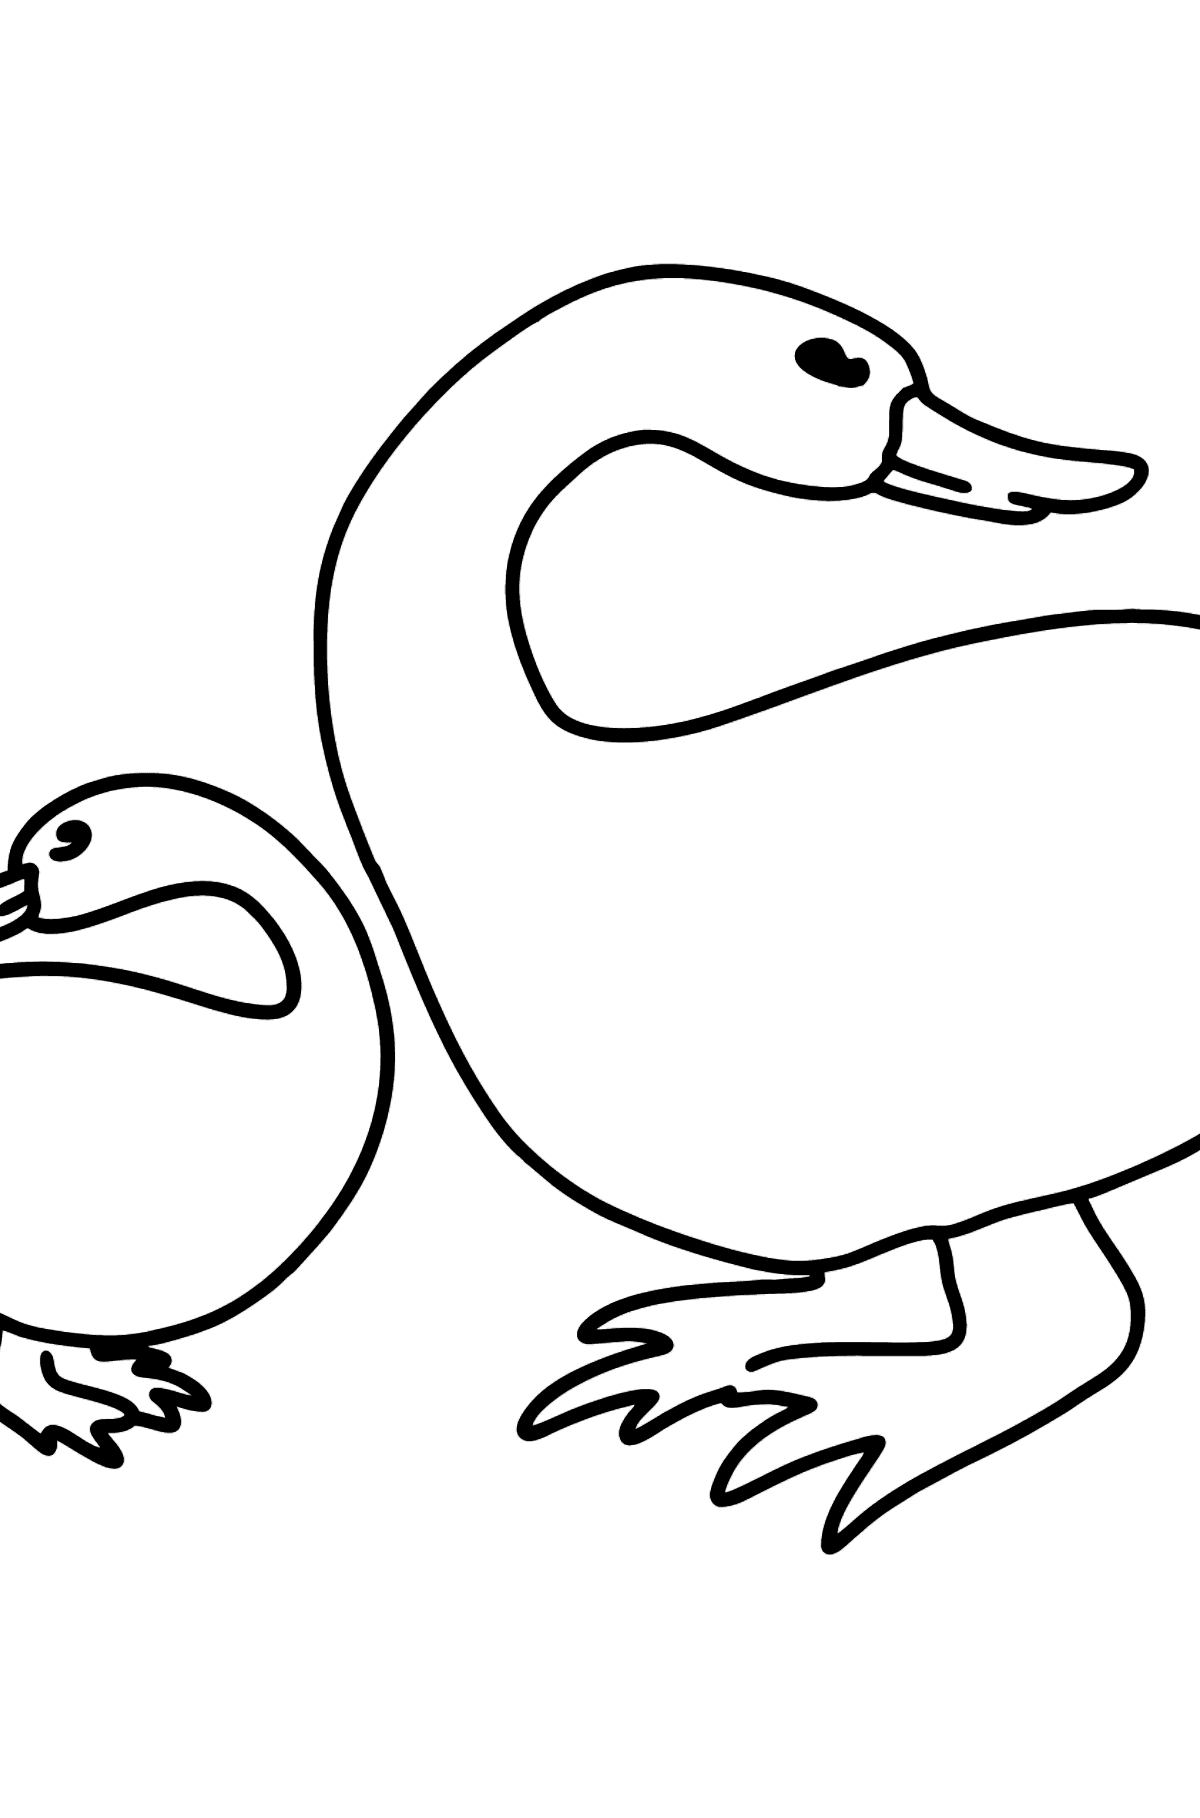 Duck with Duckling coloring page - Coloring Pages for Kids